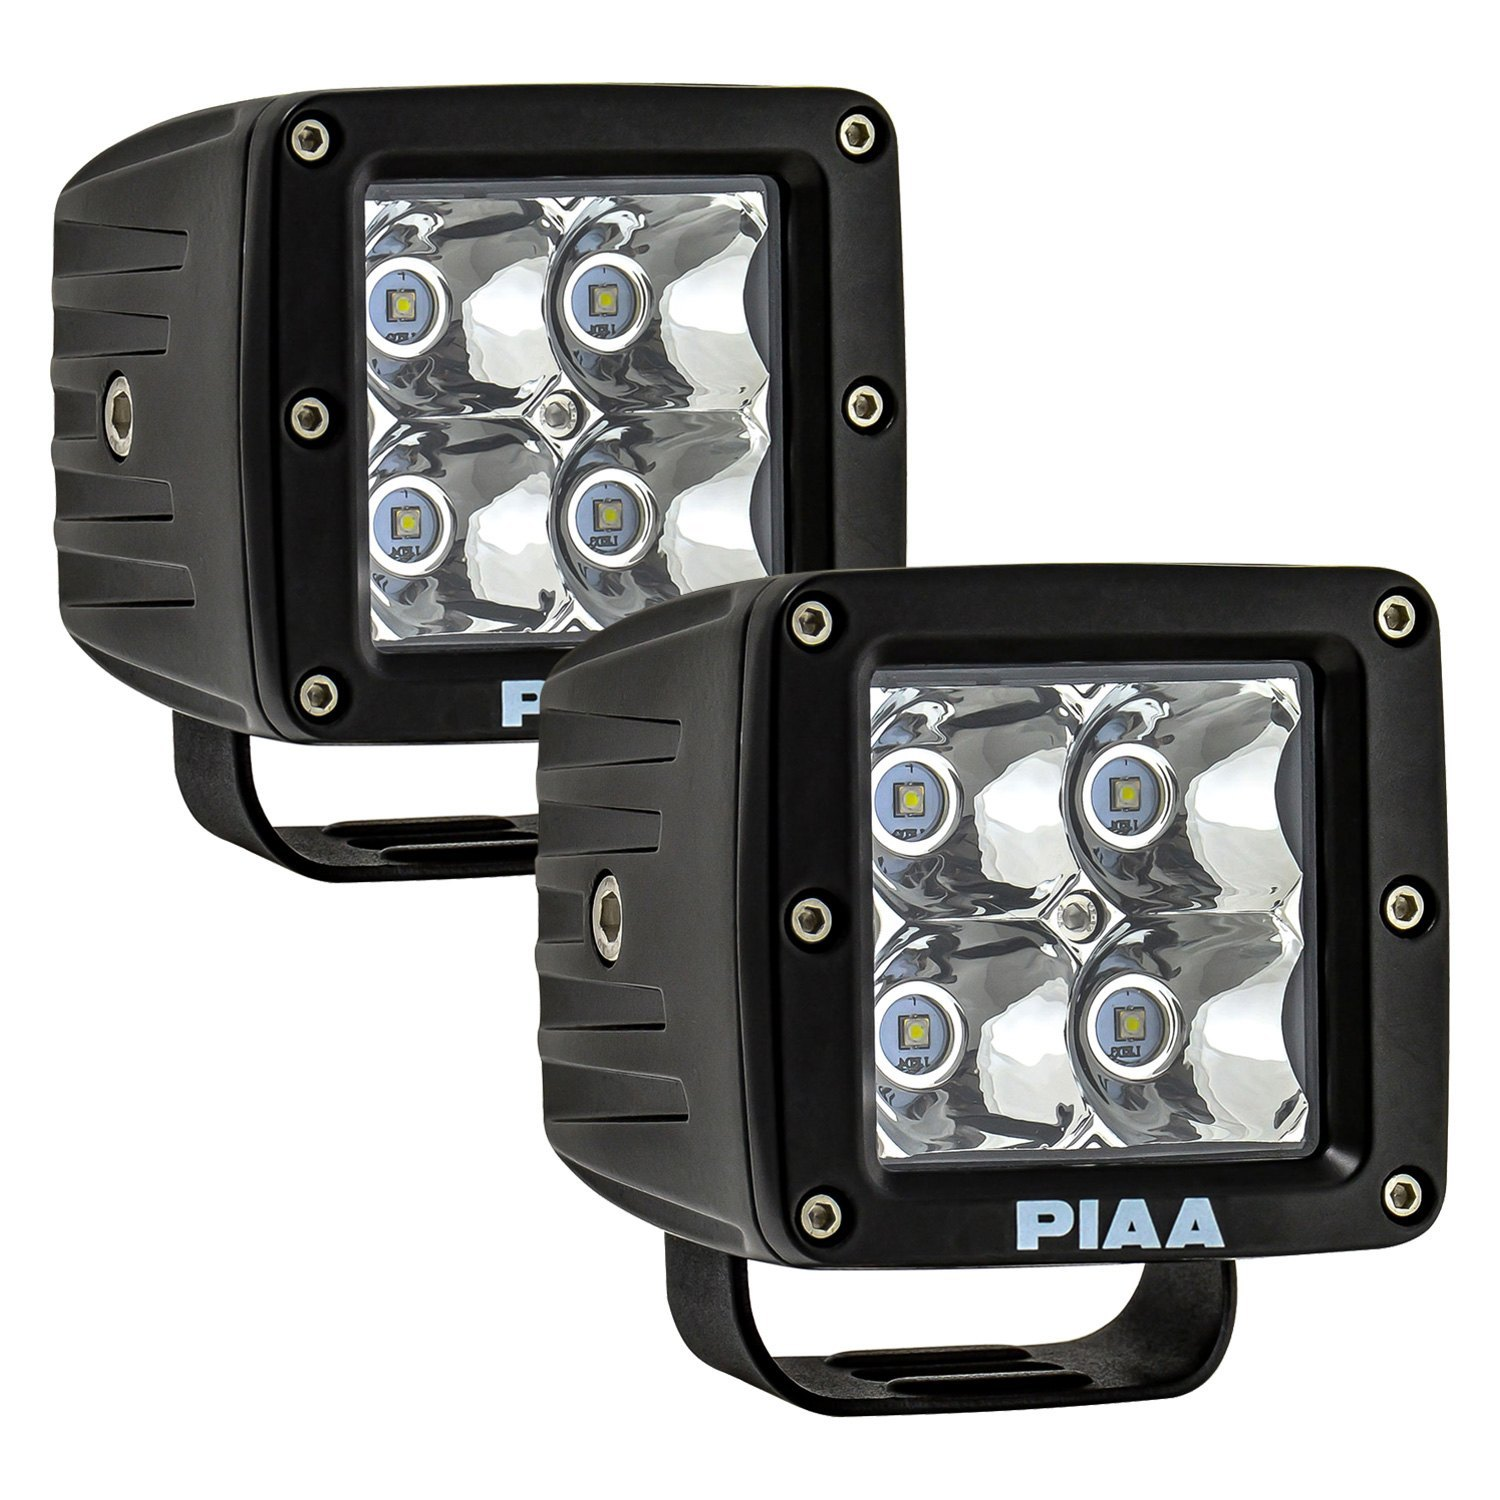 Piaa 26 06603 Quad Series 3 2x12w Cube Spot Beam Led Lights Wiring Diagram For Fog